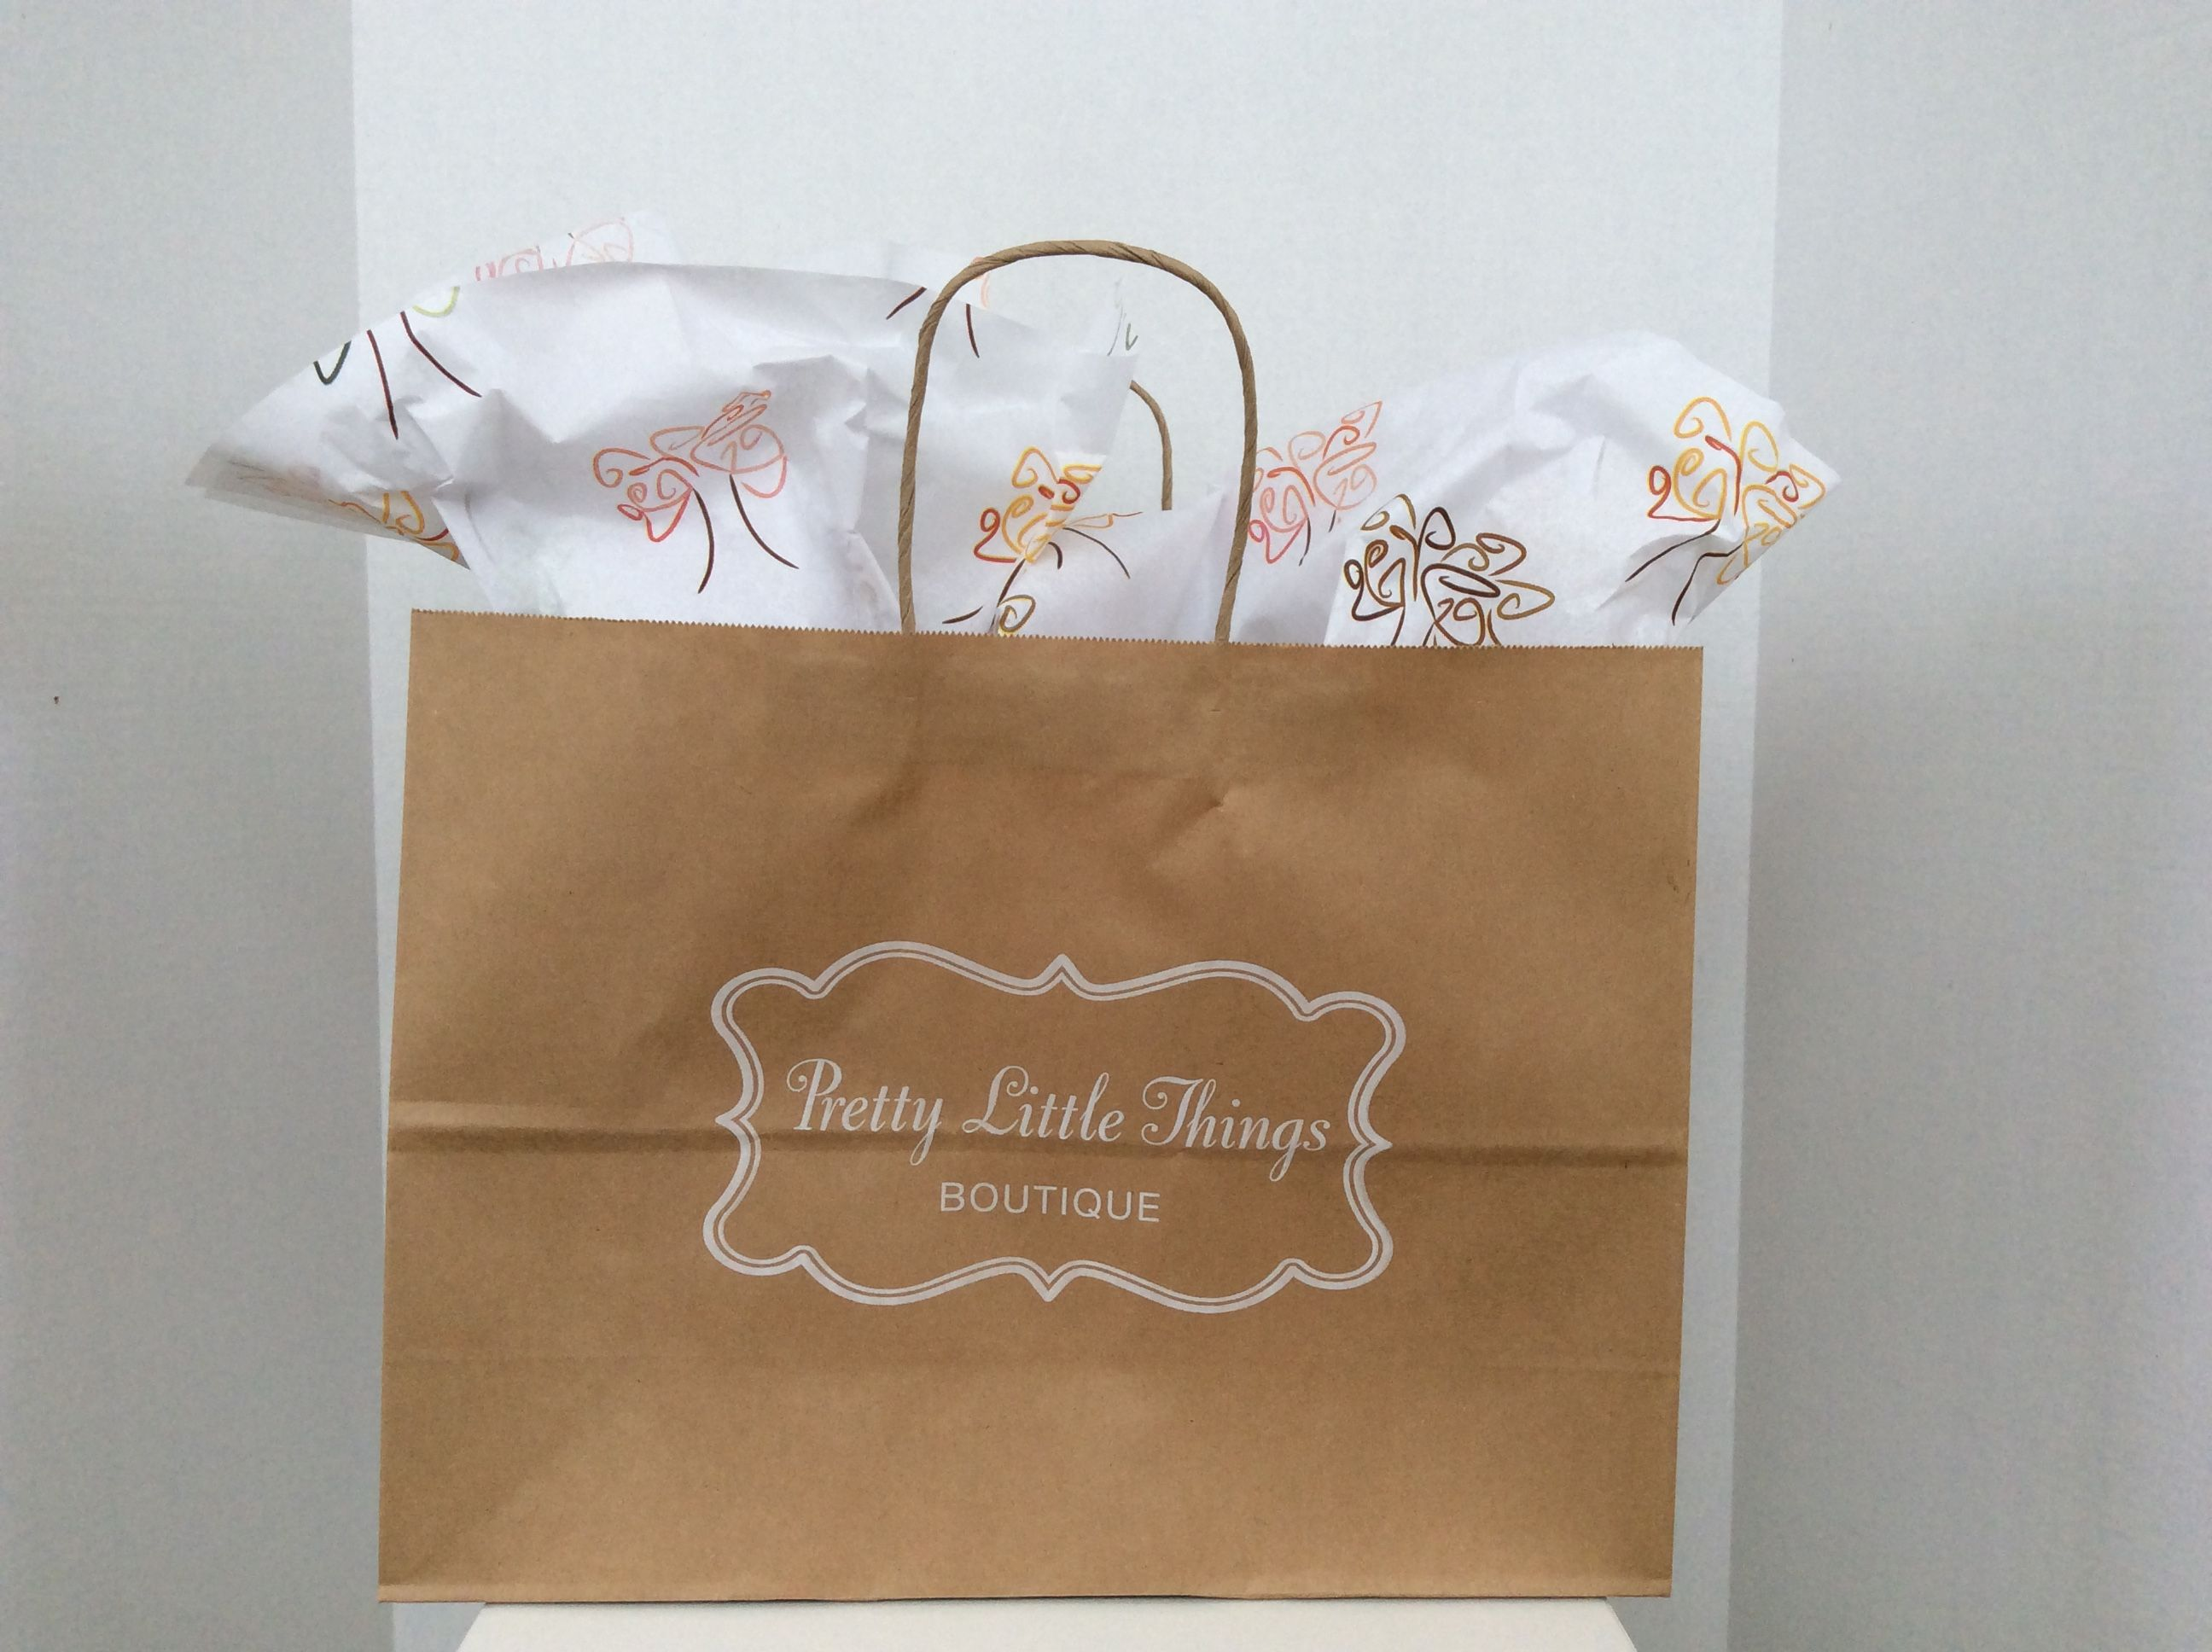 Natural kraft paper twist handle bag ink printed with a white logo